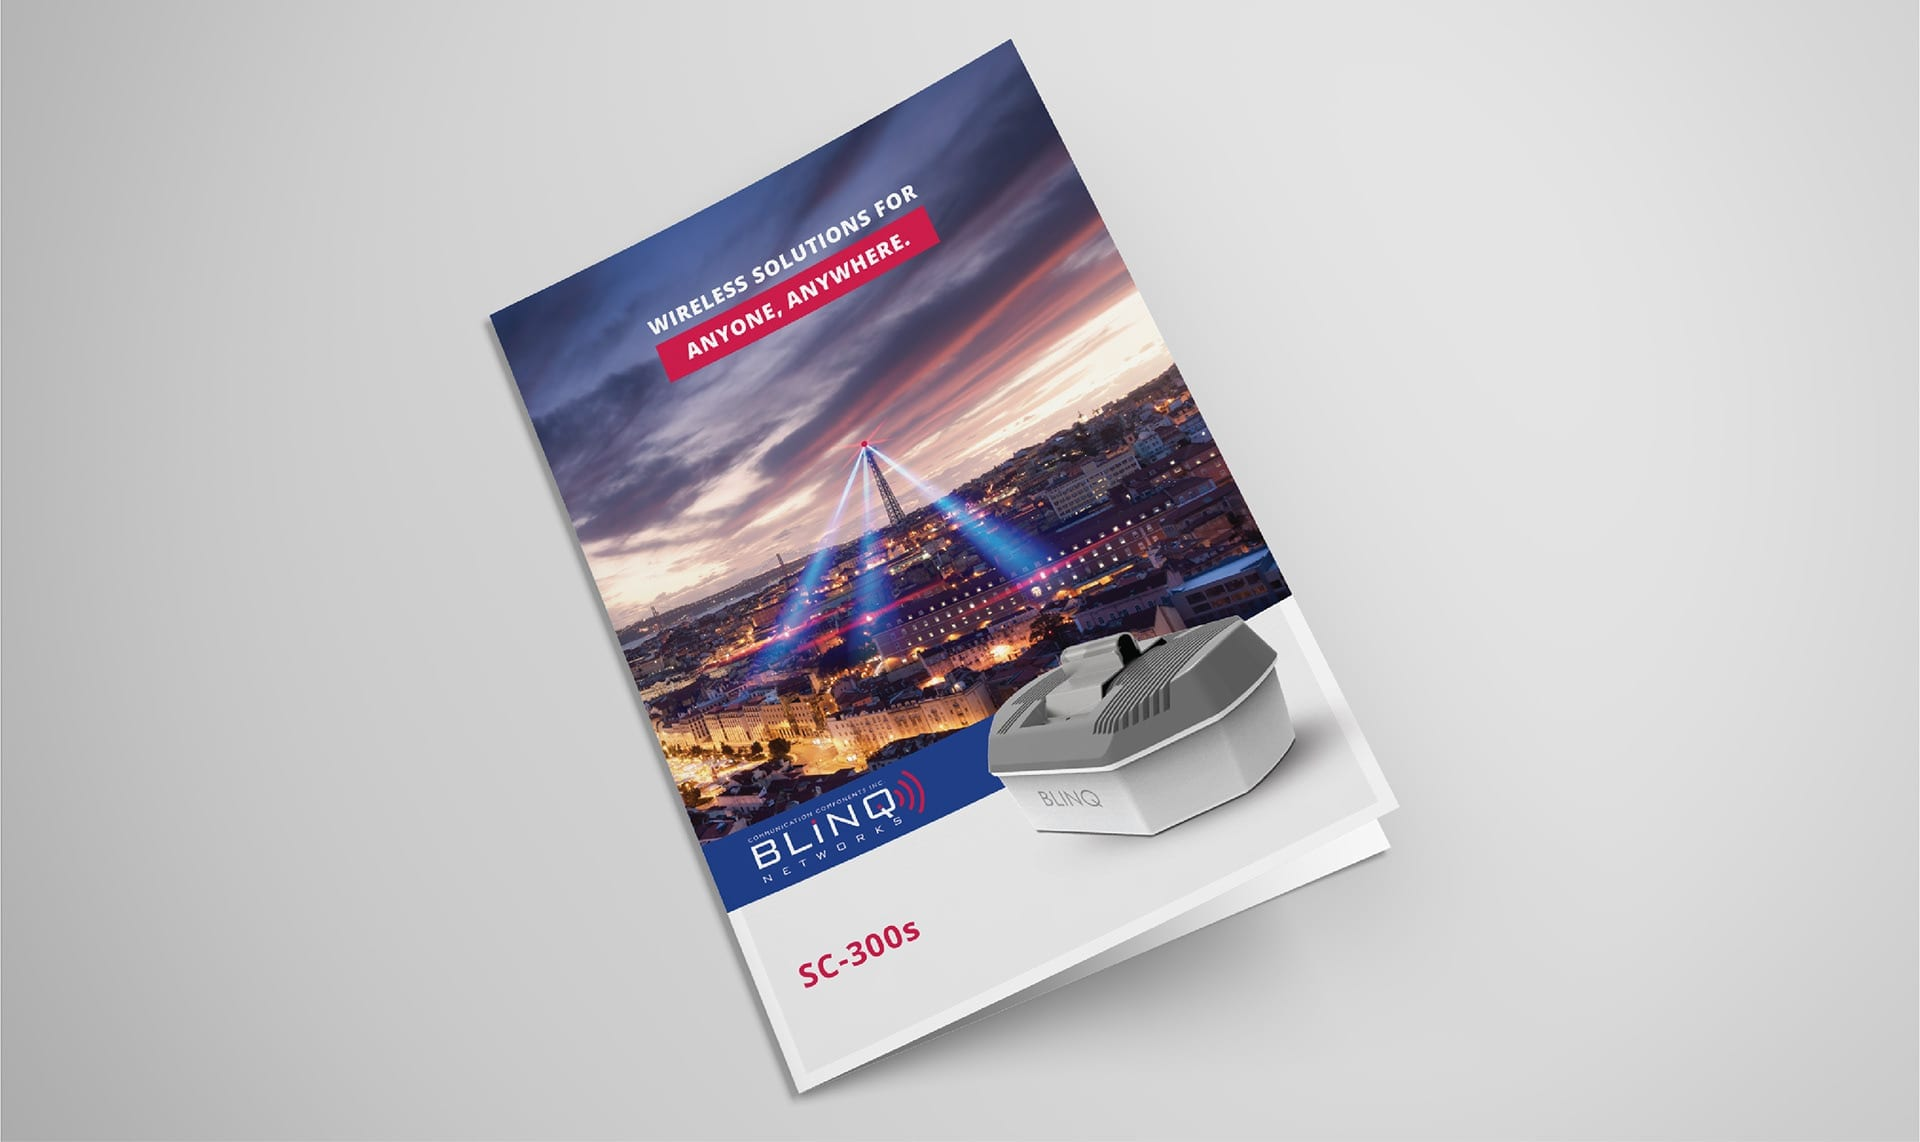 blinq networks product marketing brochure